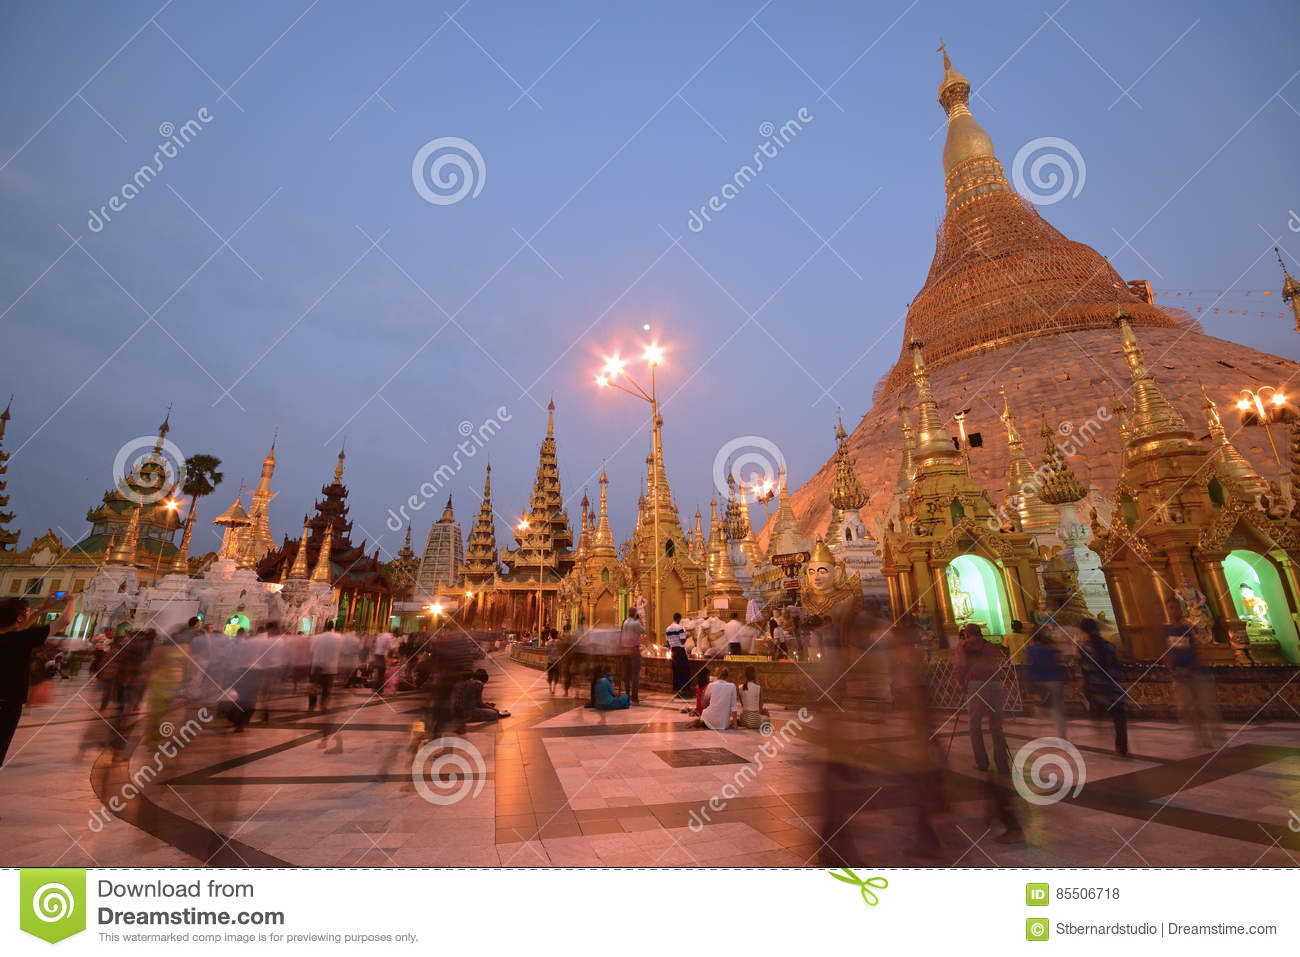 Tourists and local Devotees in crowded Shwedagon Pagoda in the evening during sunset